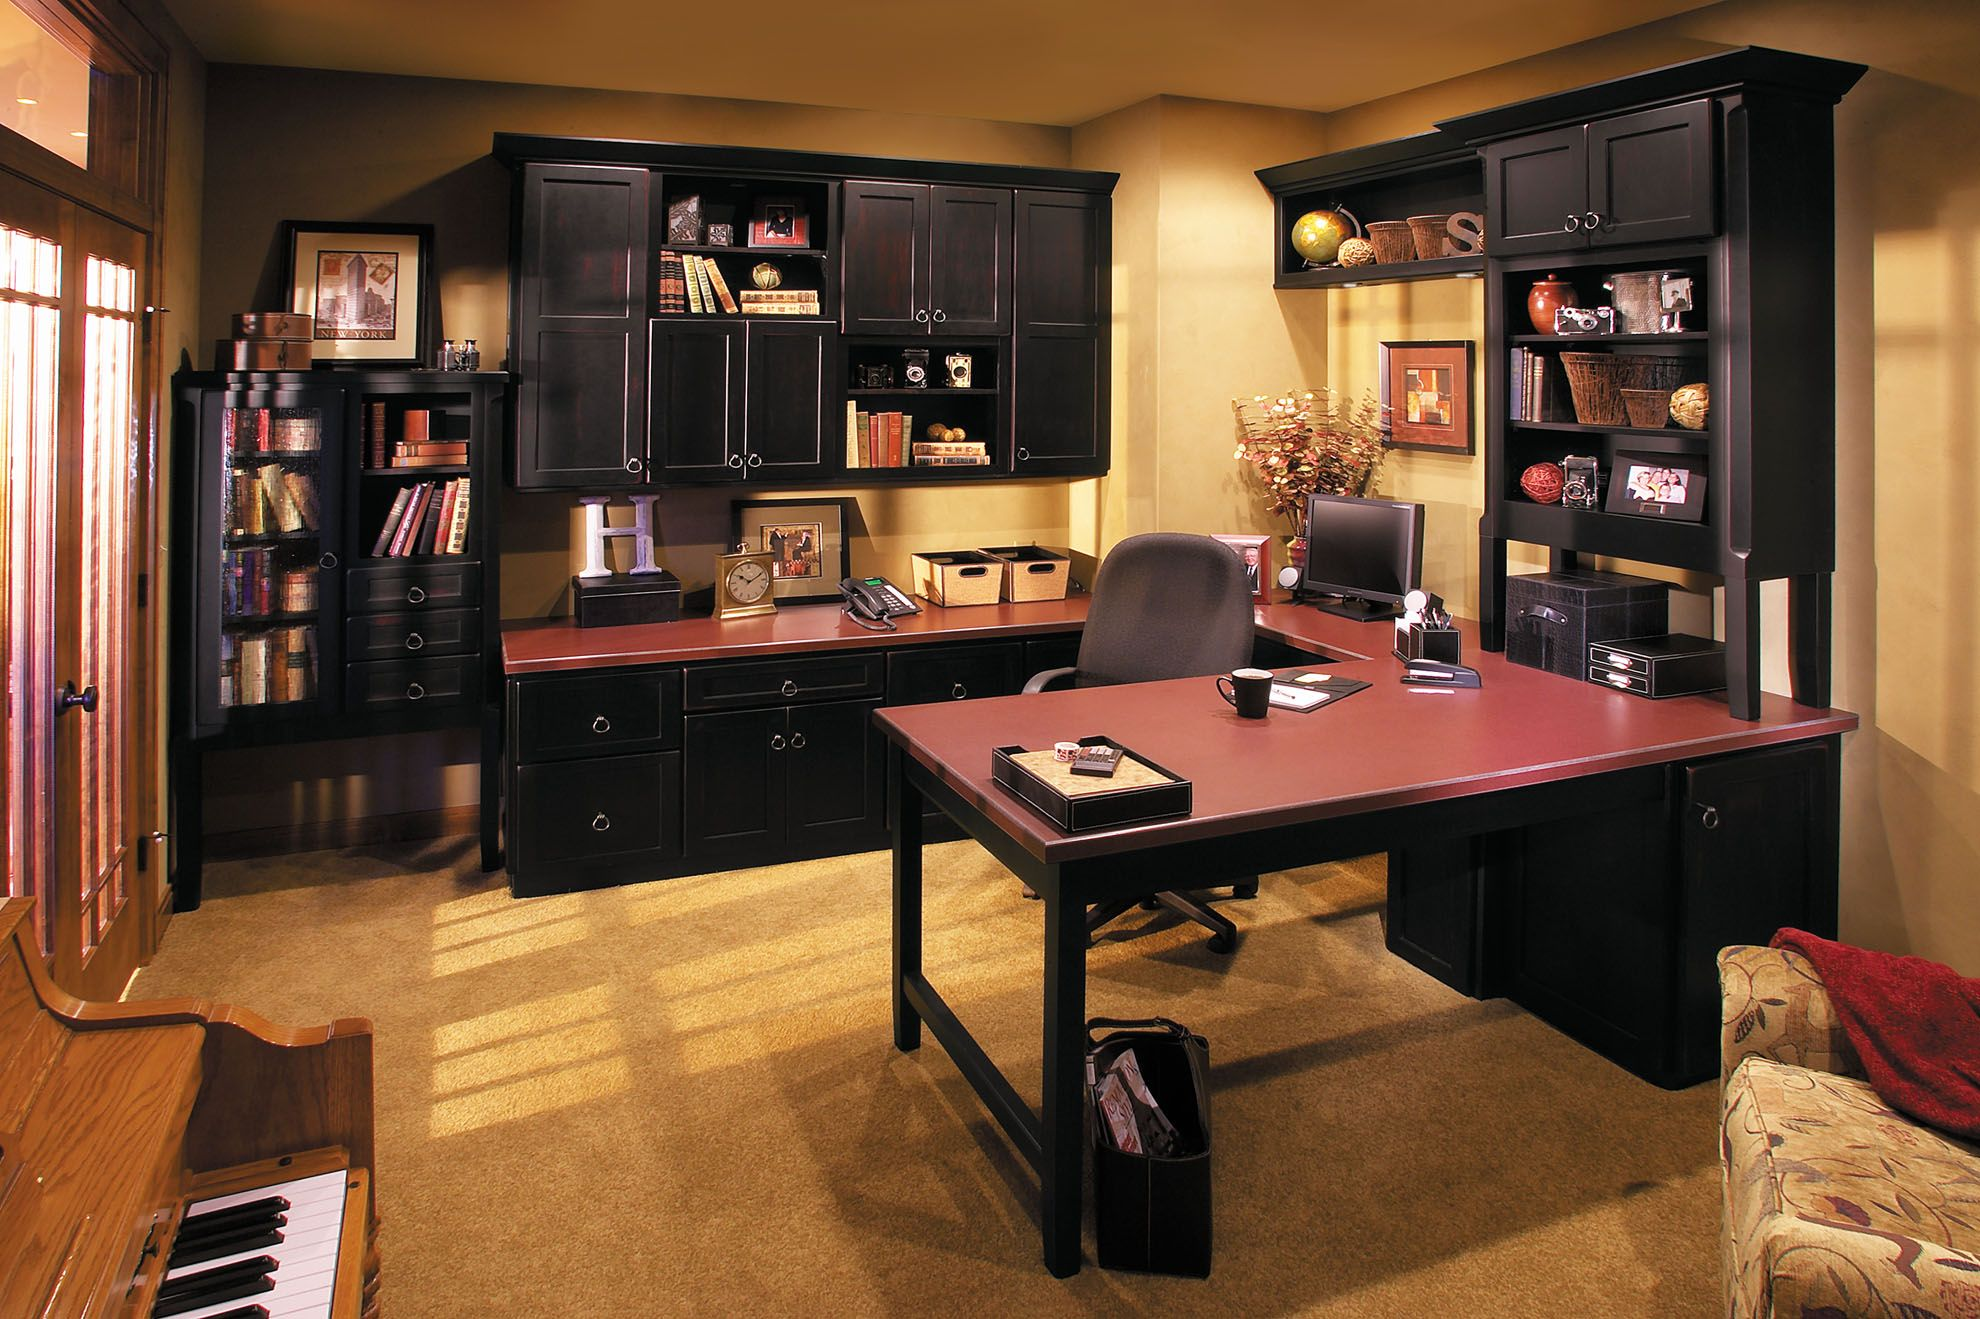 17 Best Images About Ofiice Organization On Pinterest | Receptions,  Conference Room And Offices